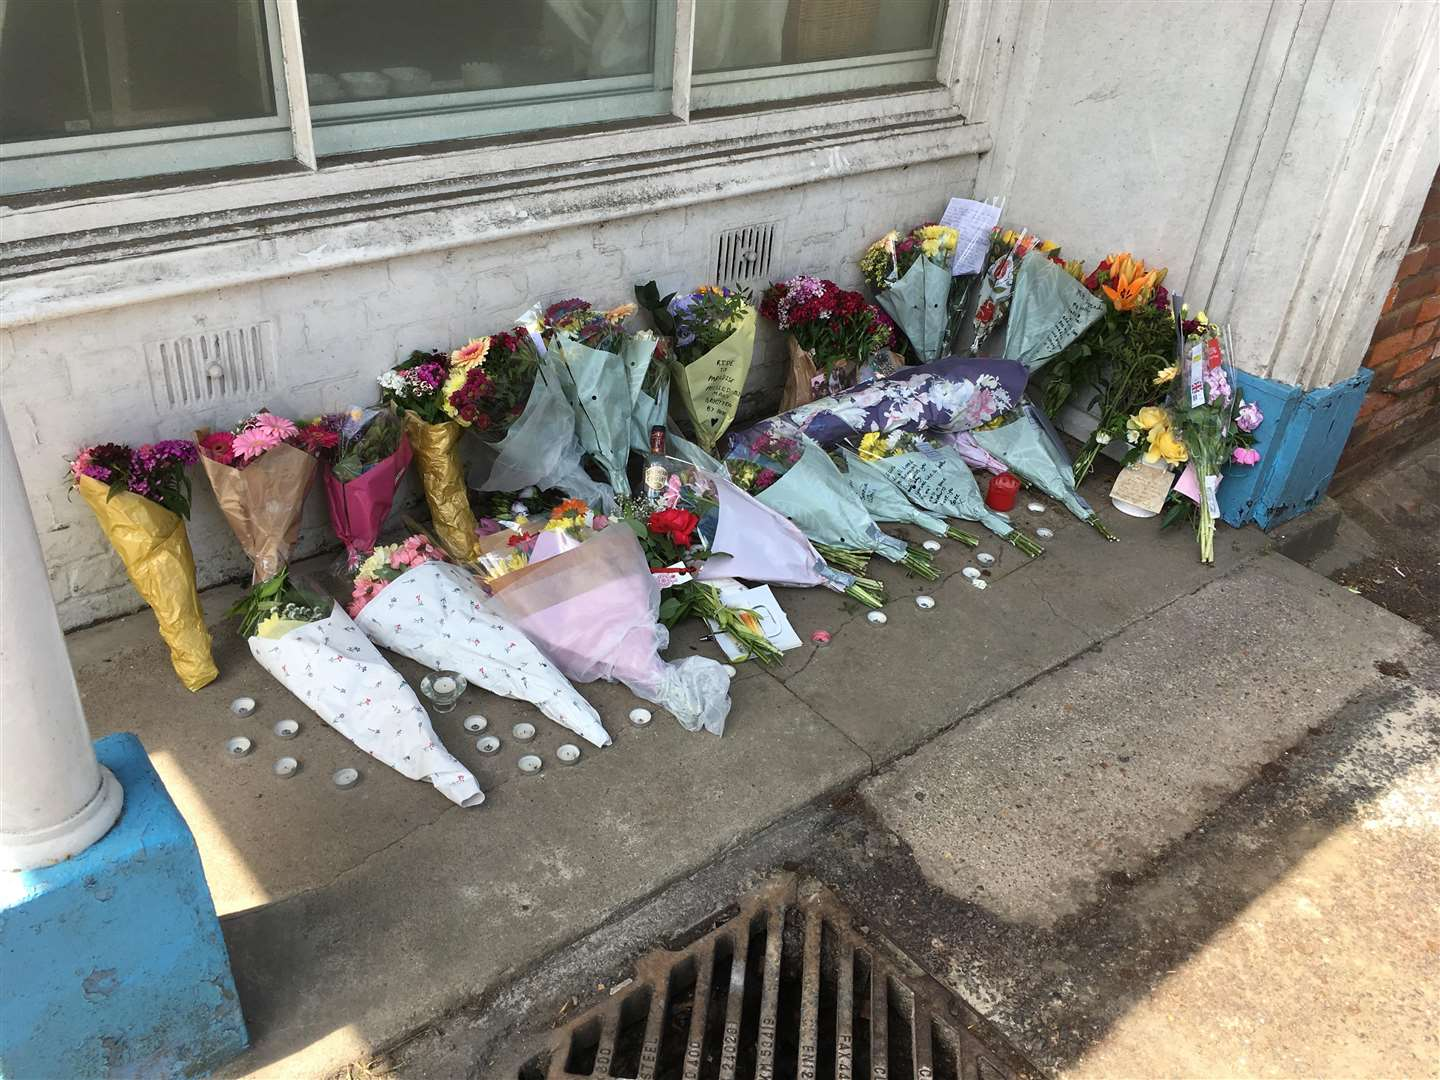 Floral tributes were left in Wateringbury for 21-year-old Ellis Overy who died in a motorcycle crash